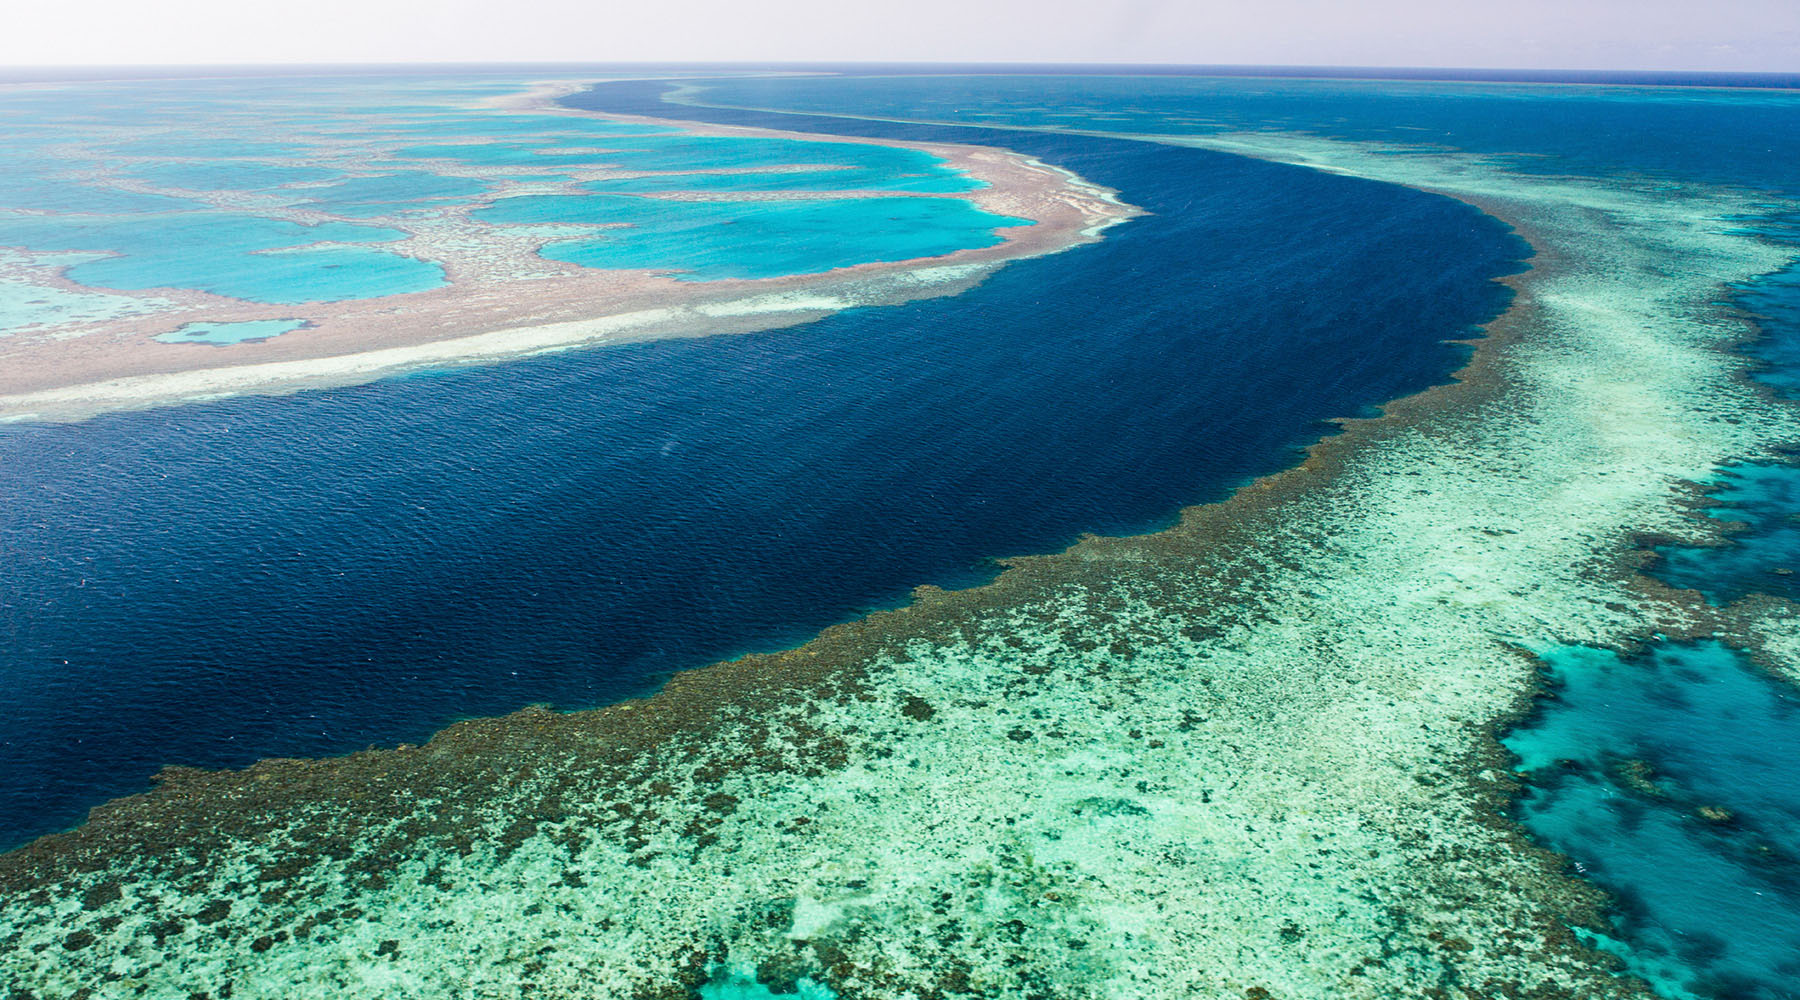 Your voyage from Australia to Asia isn't complete without seeing The Great Barrier Reef—one of the Seven Wonders of the World.